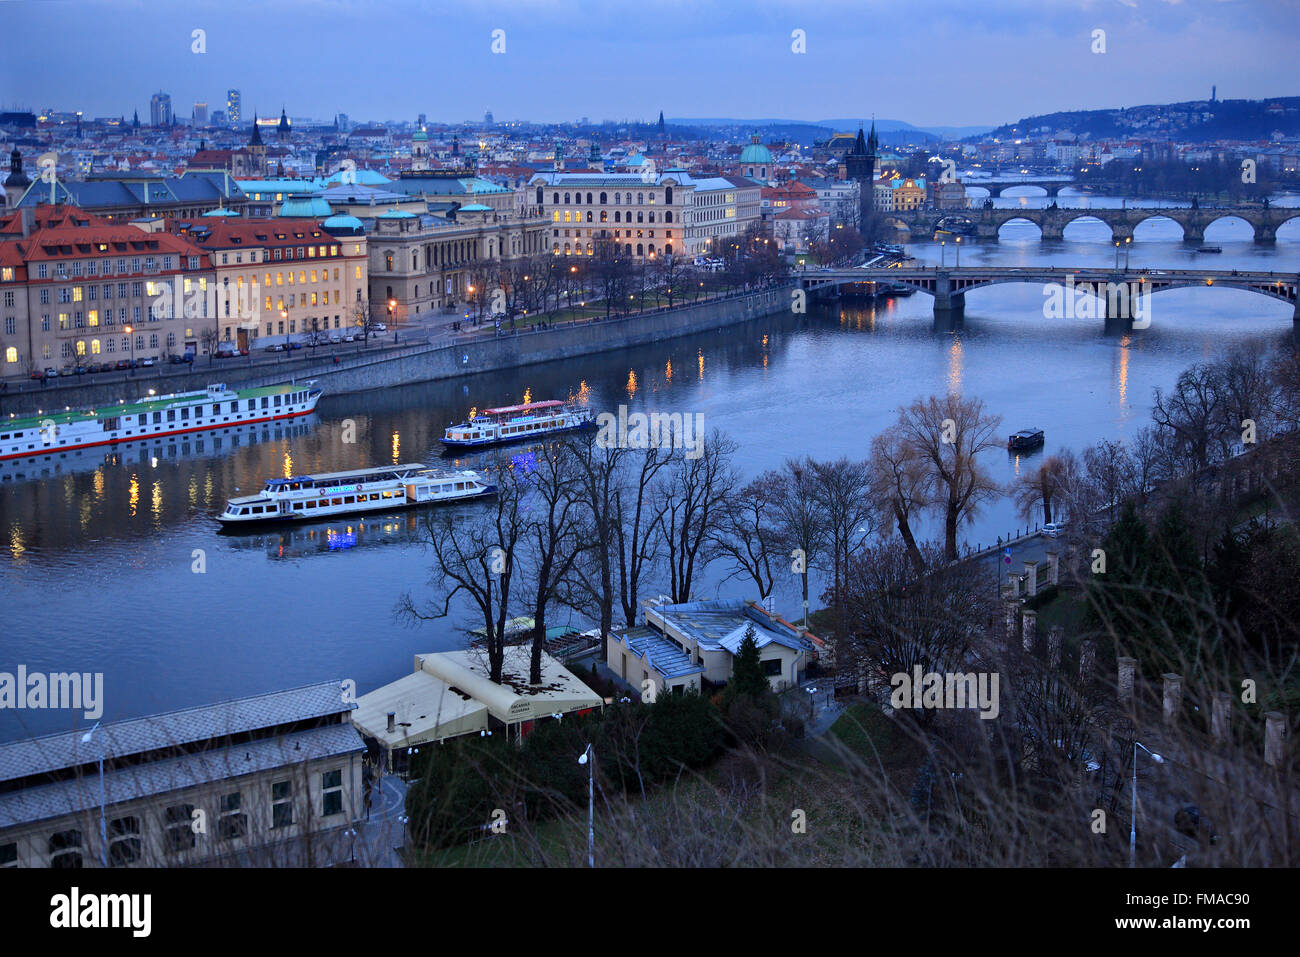 Riverboats and bridges on Vltava (Moldava), river, Prague, Czech Republic. The one in the middle is the famous Charles' - Stock Image